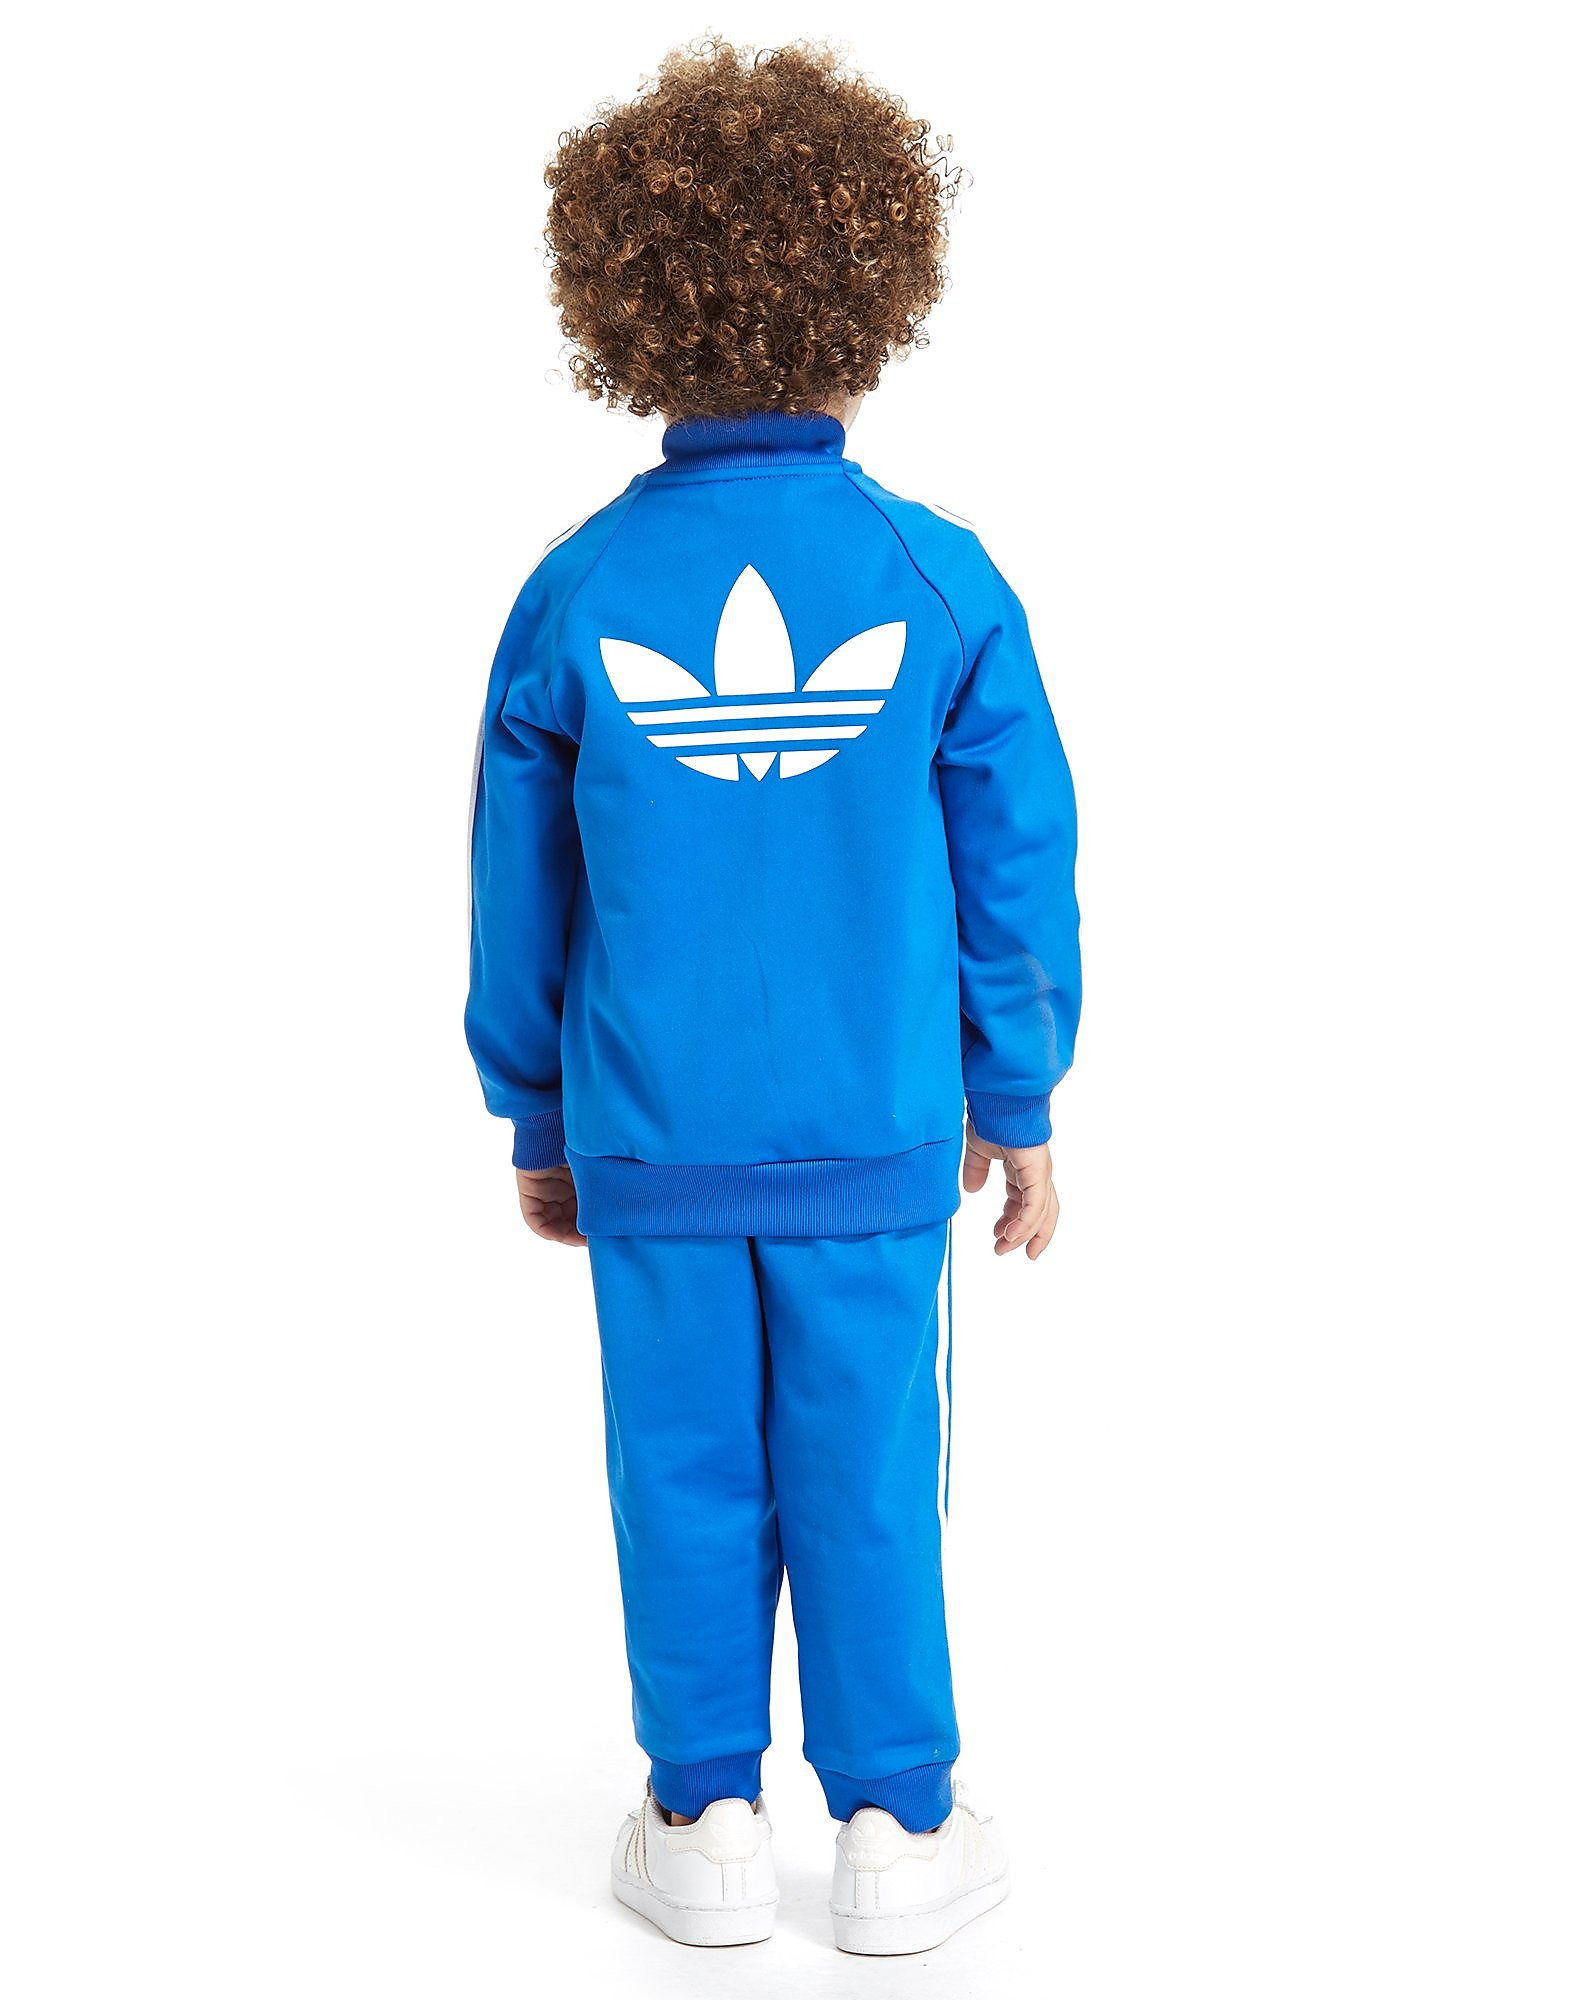 adidas Originals Superstar Suit för baby